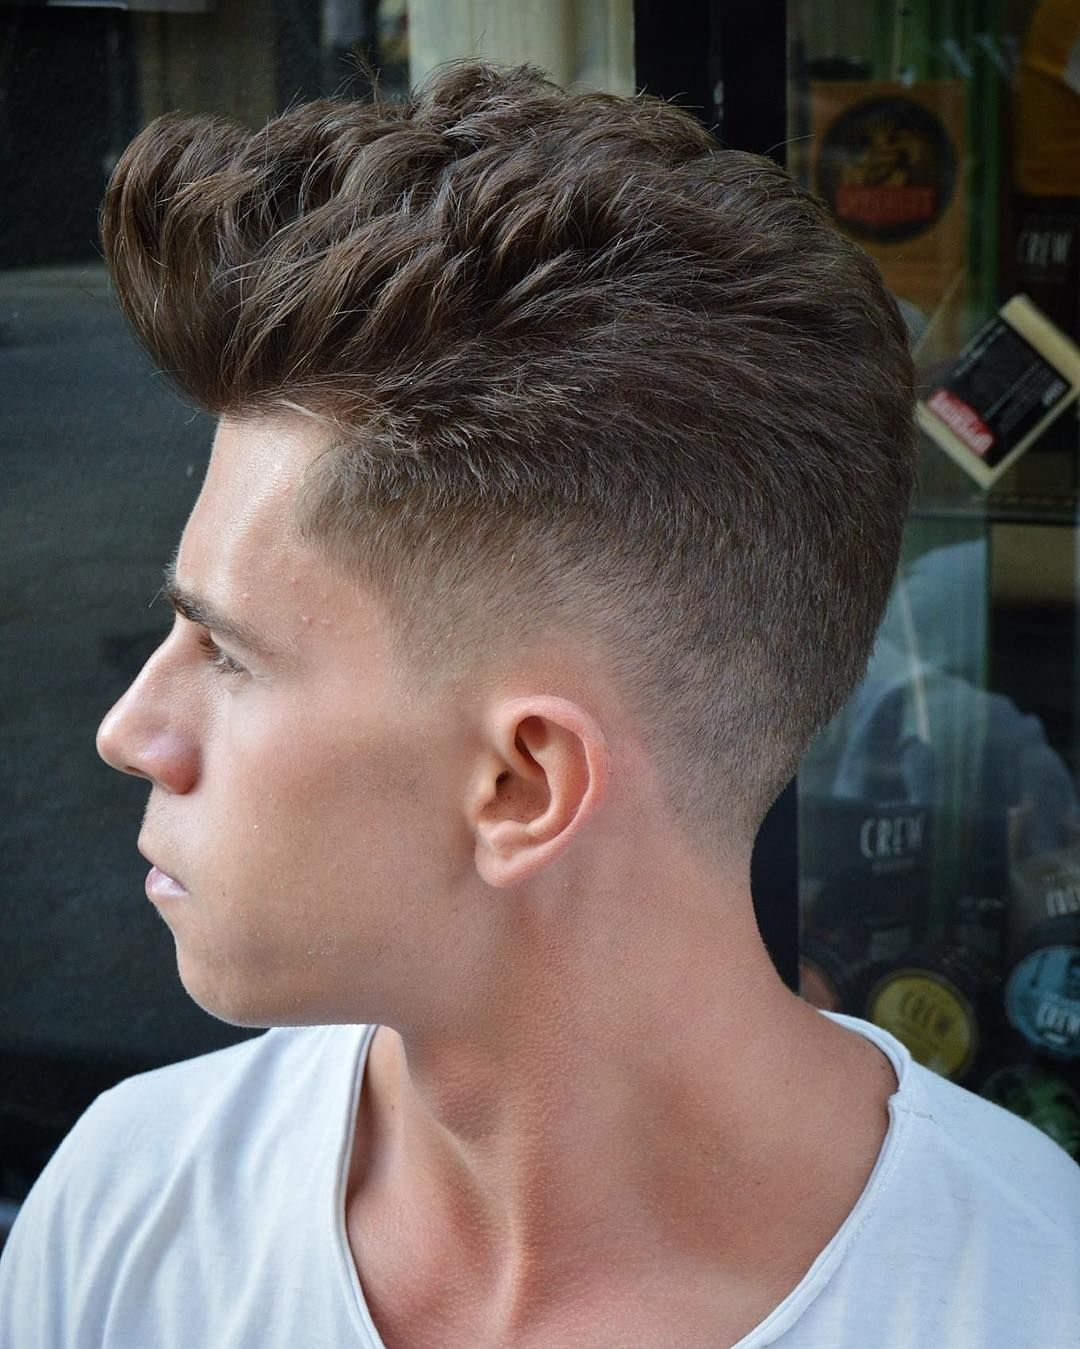 80 new trending hairstyles for stylish men in 2017 | low fade